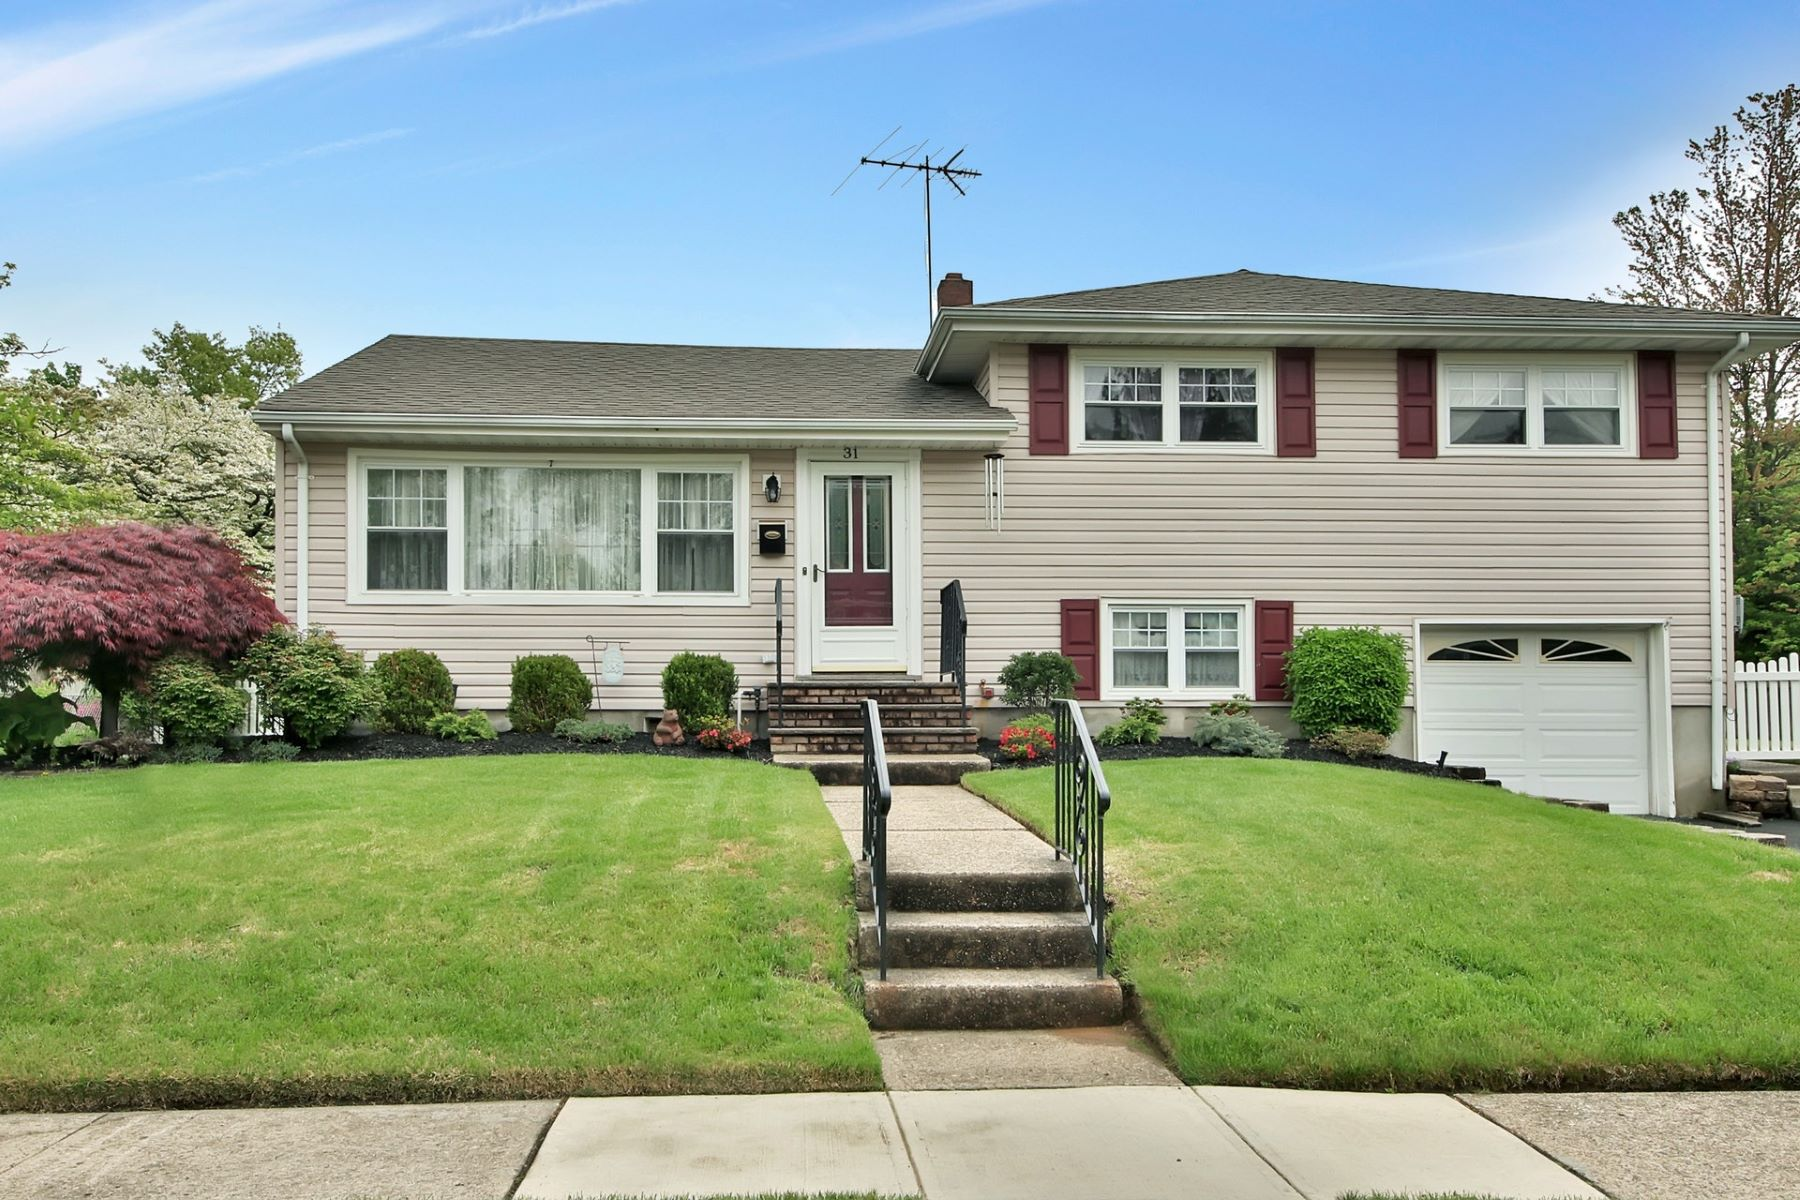 Single Family Home for Sale at Expanded Split 31 Beacon Rd, Dumont, New Jersey 07628 United States